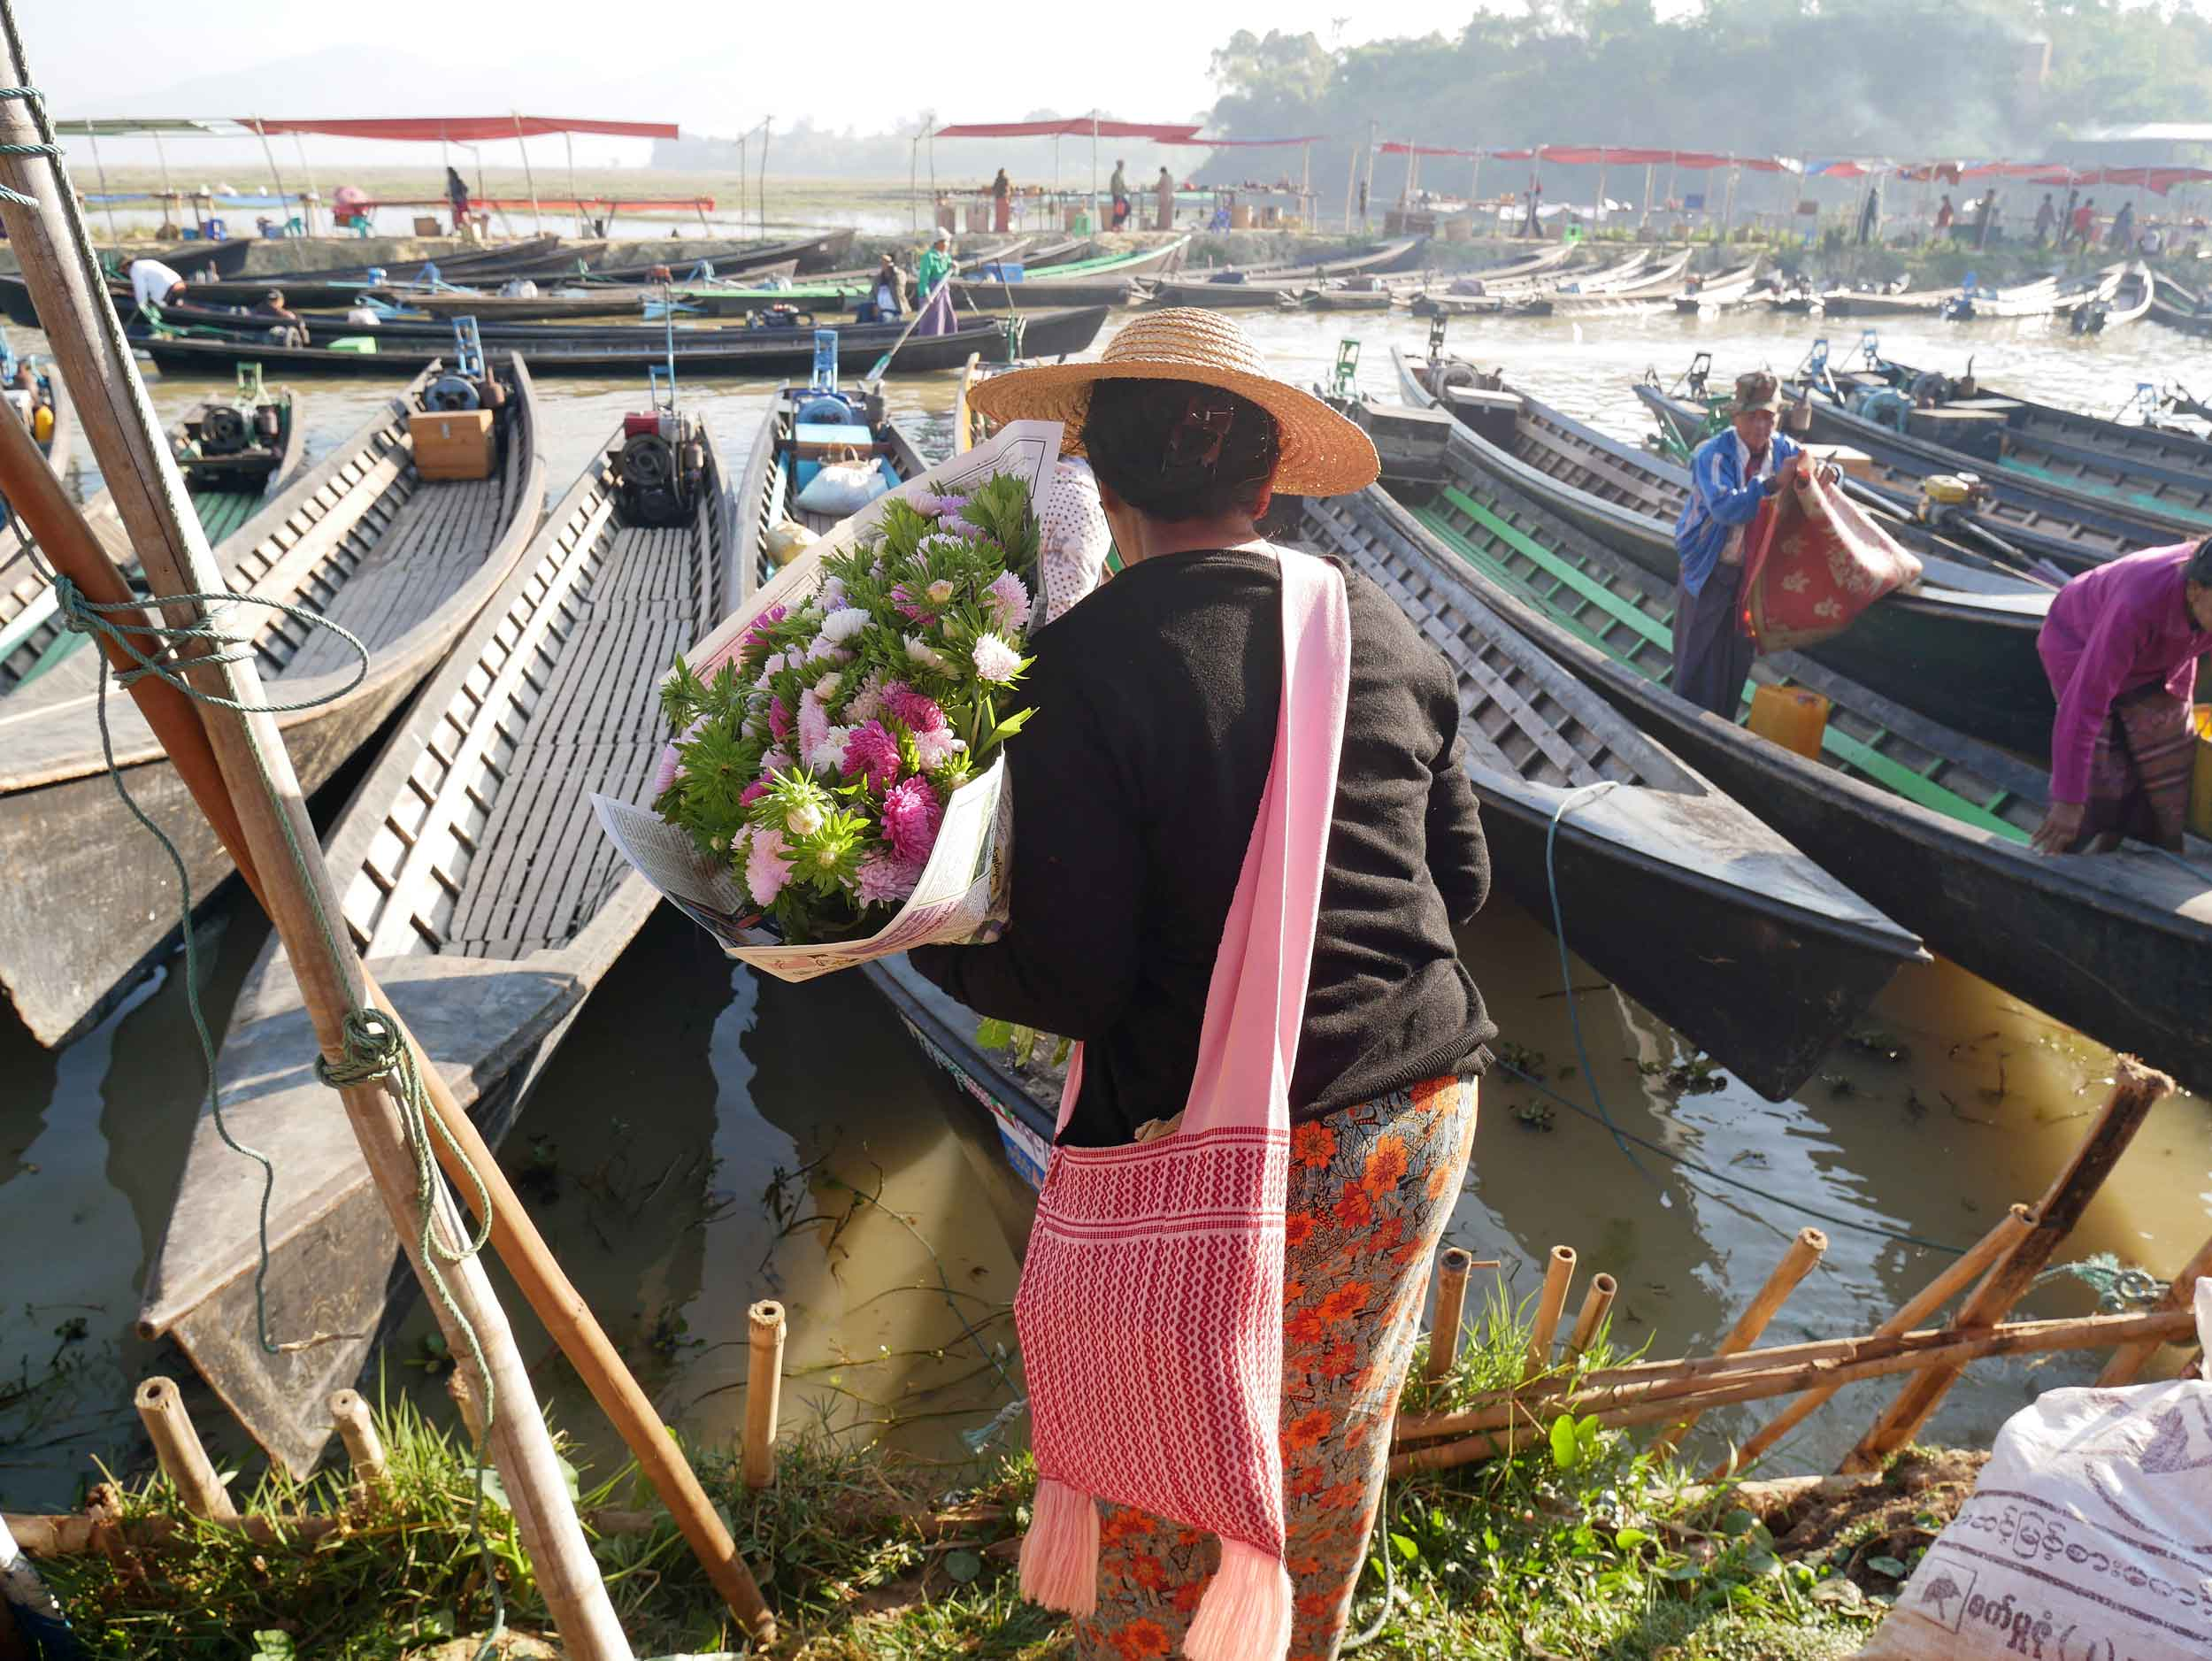 Shoppers wait for their boat taxi to make their way back home with their finds (Feb 22).